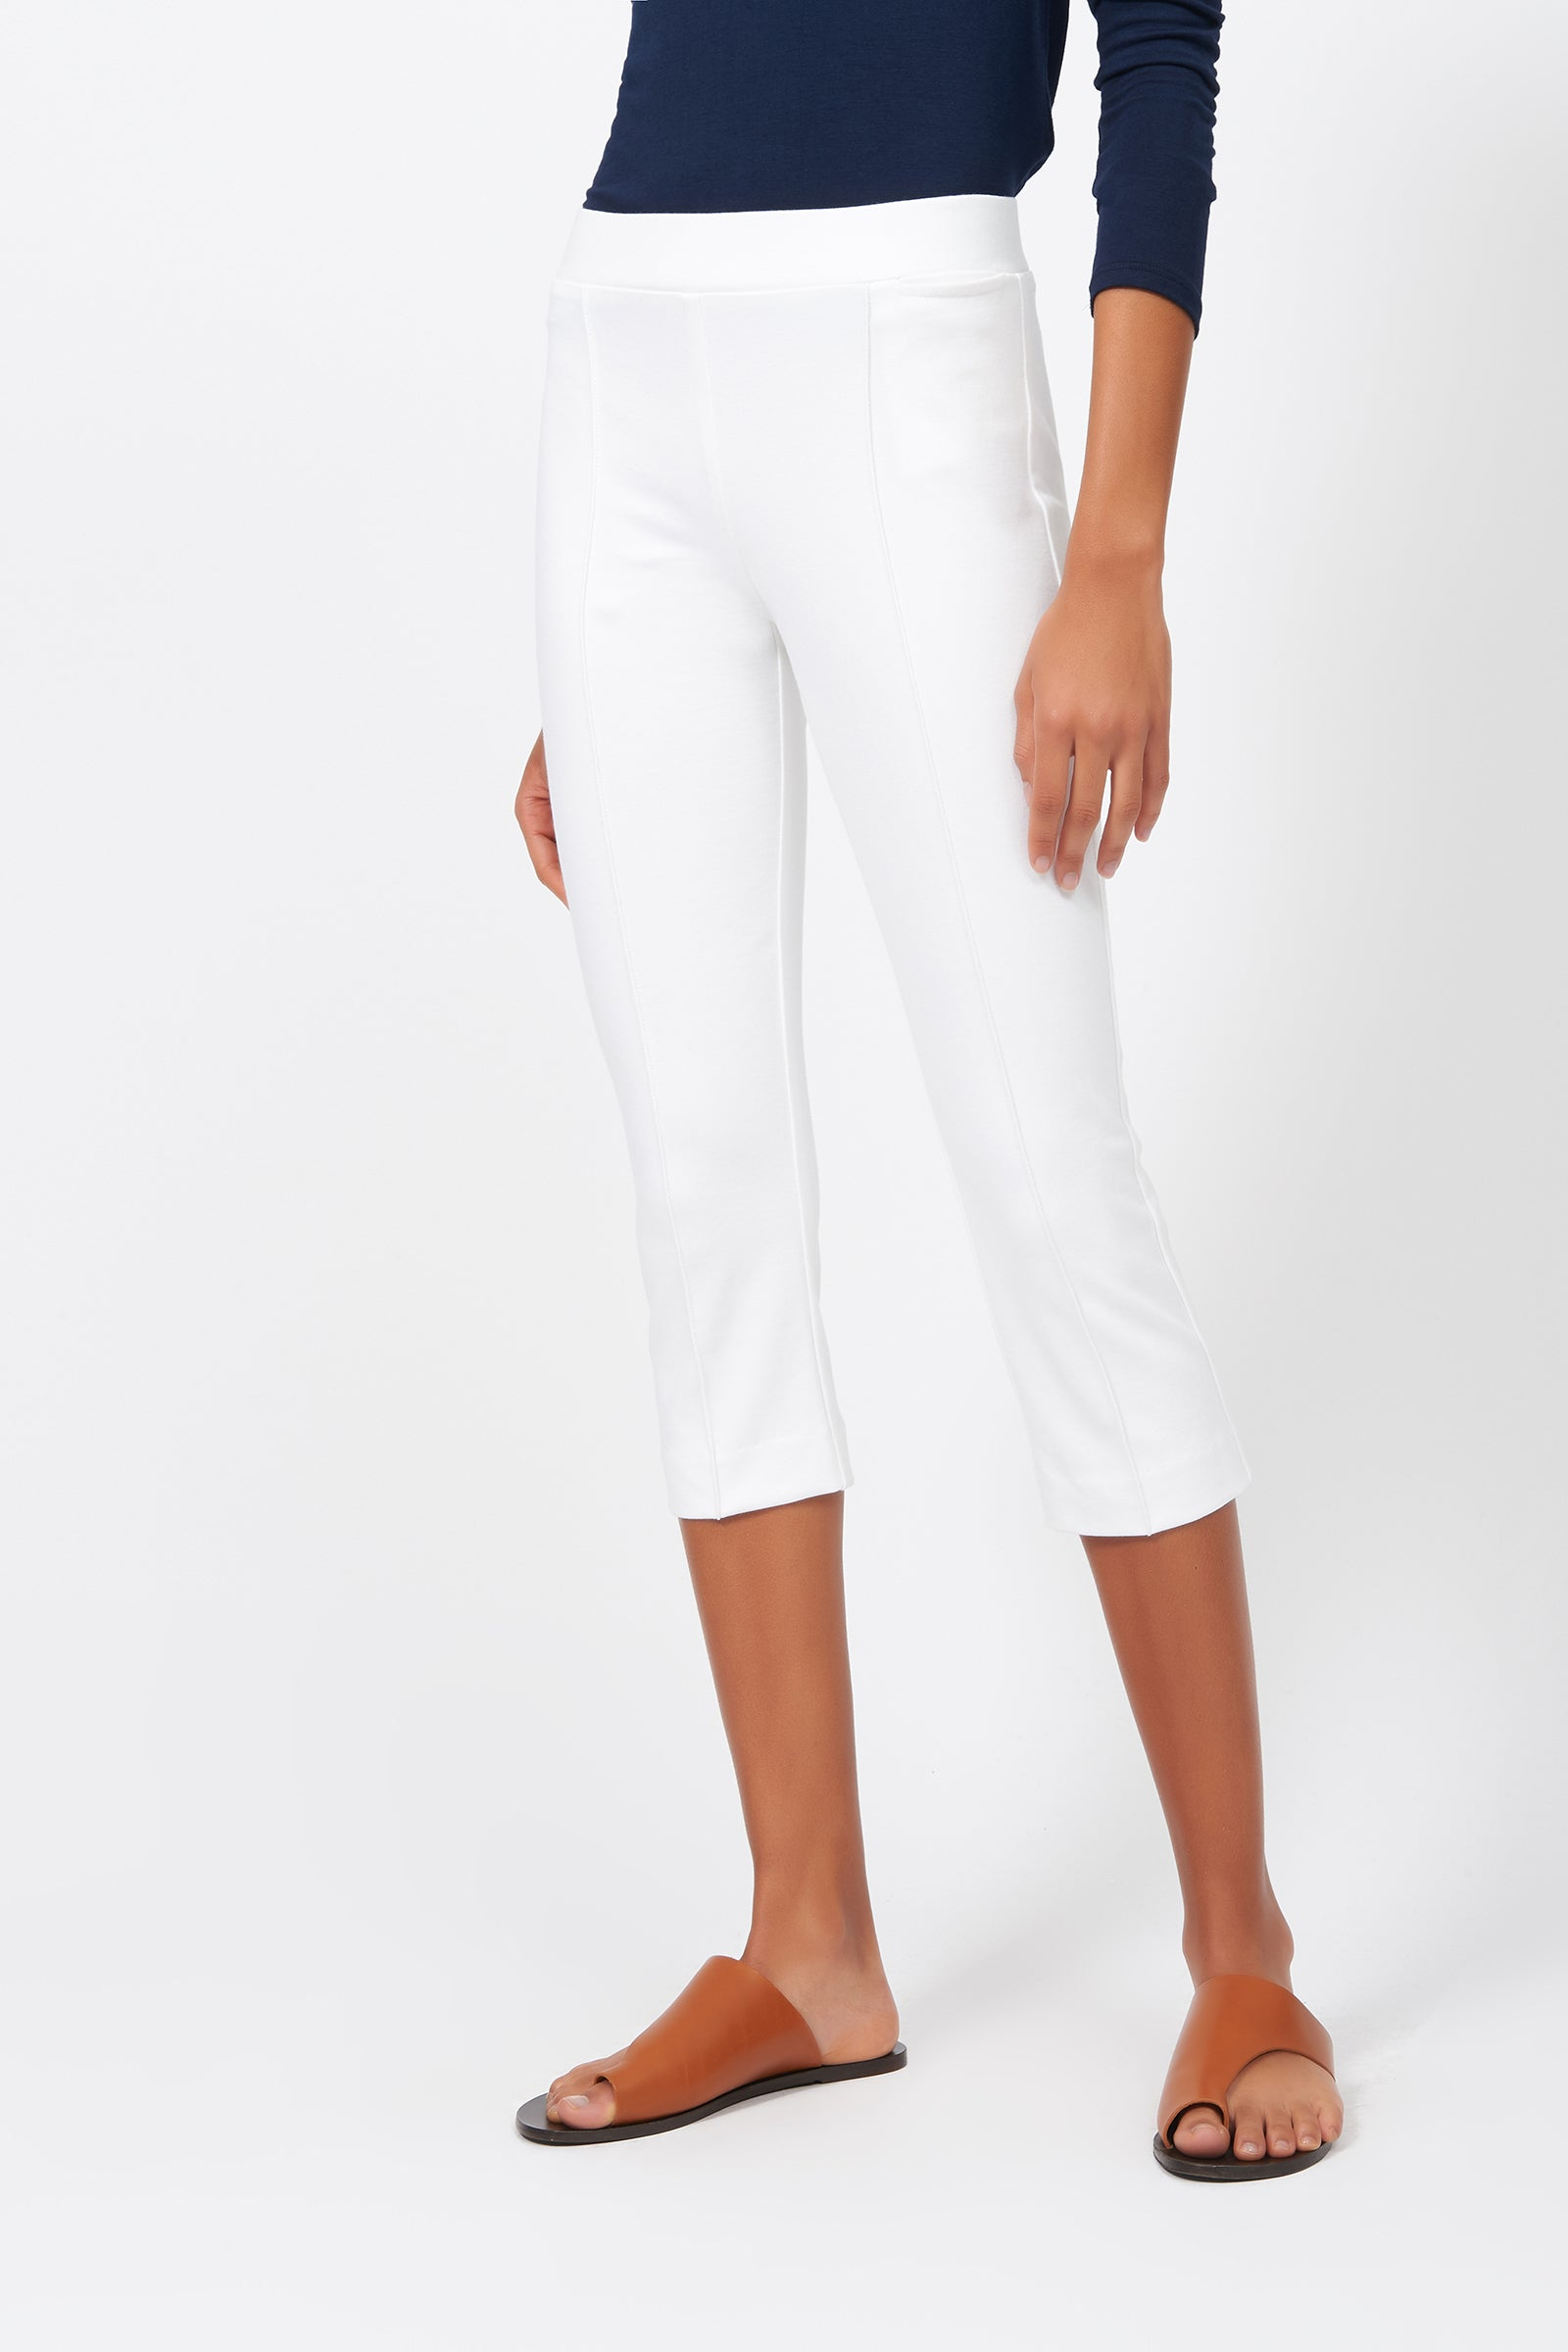 Kal Rieman Pintuck Ponte 3/4 Pant in White on Model Front View